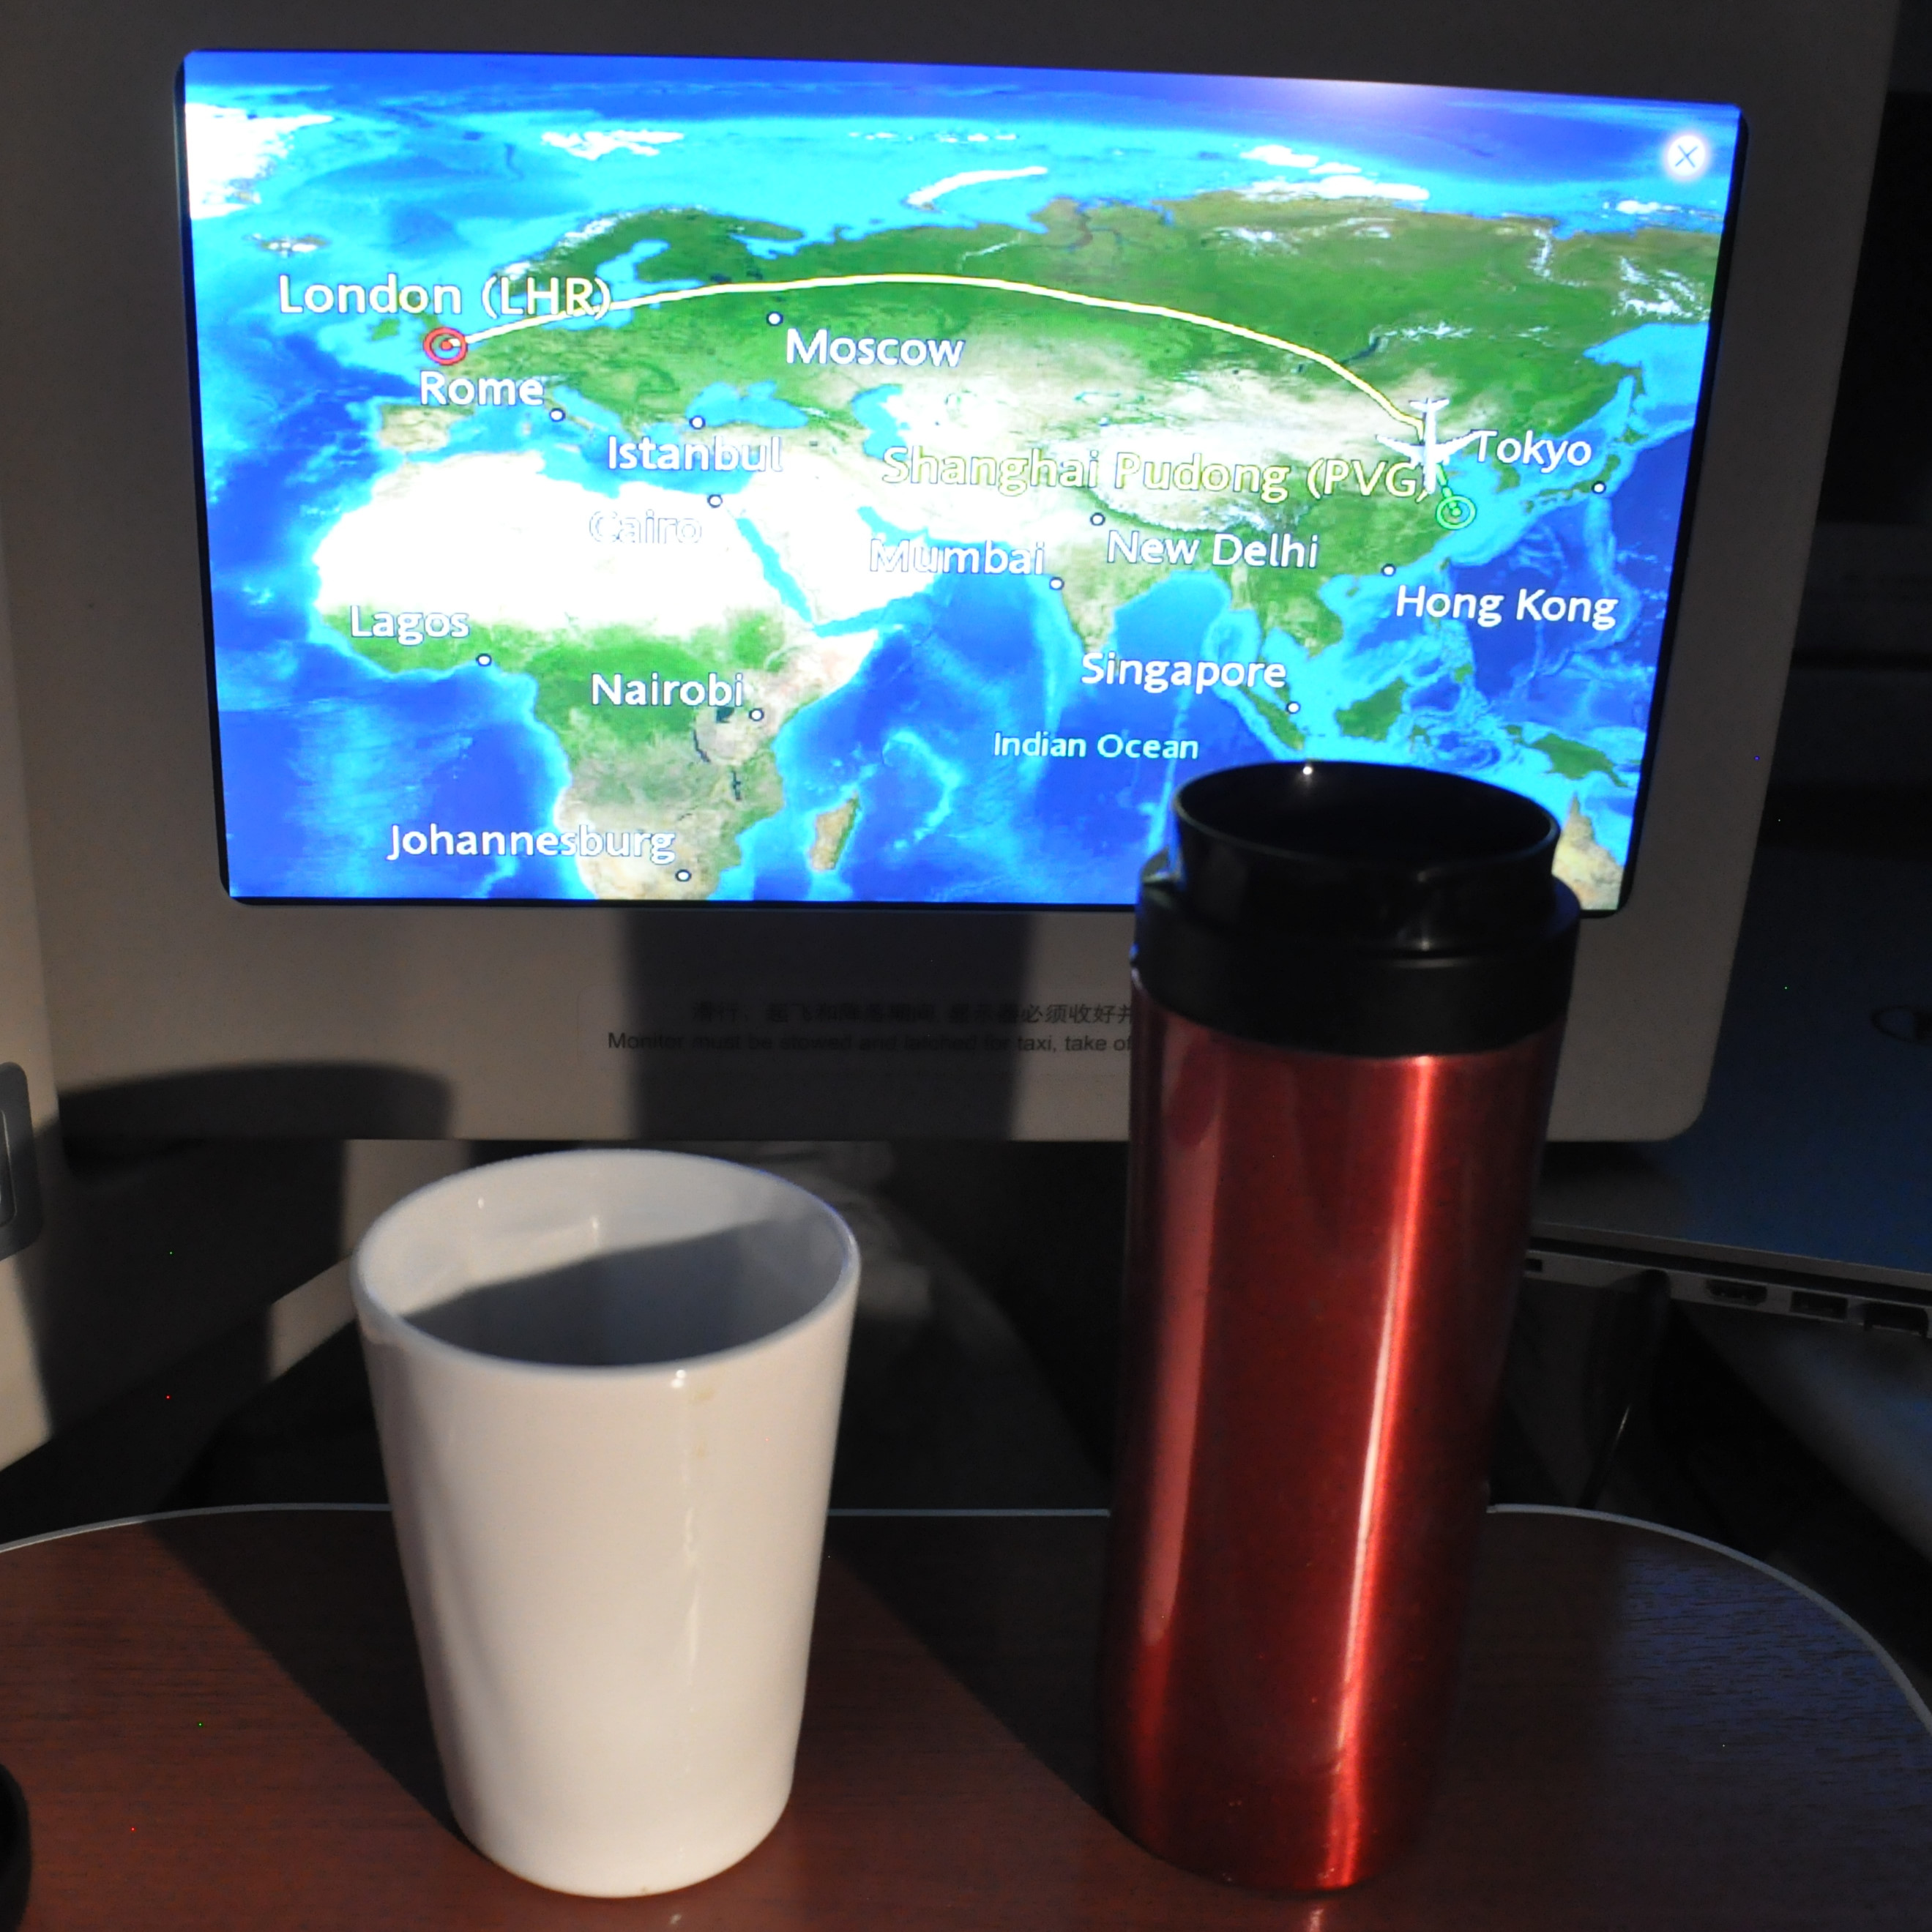 Celebrating a successful flight in business class with China Eastern to Shanghai with some coffee made in my Travel Press and served in my Therma Cup.